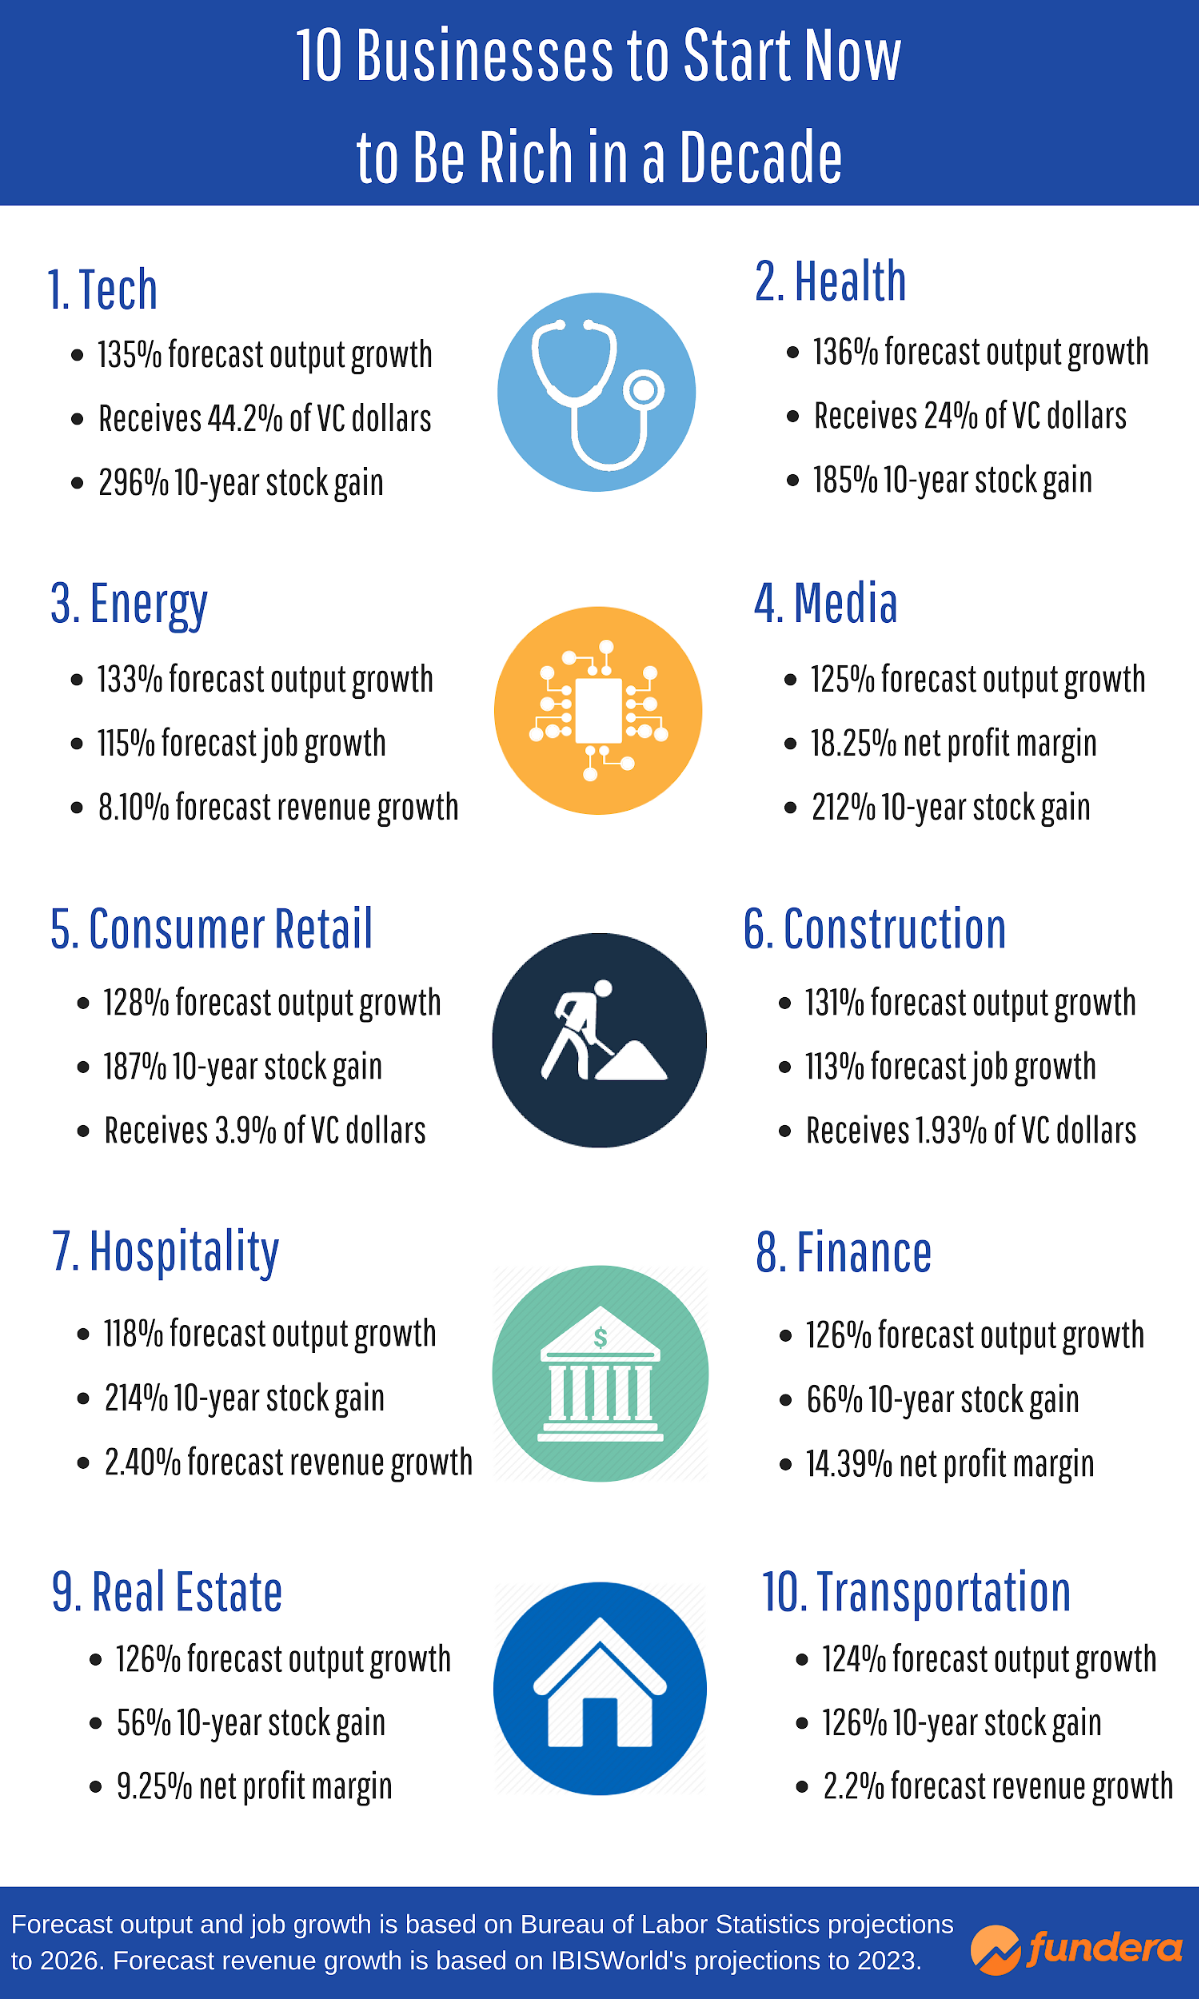 10 Businesses to Start Now to Be Rich in a Decade - infographic